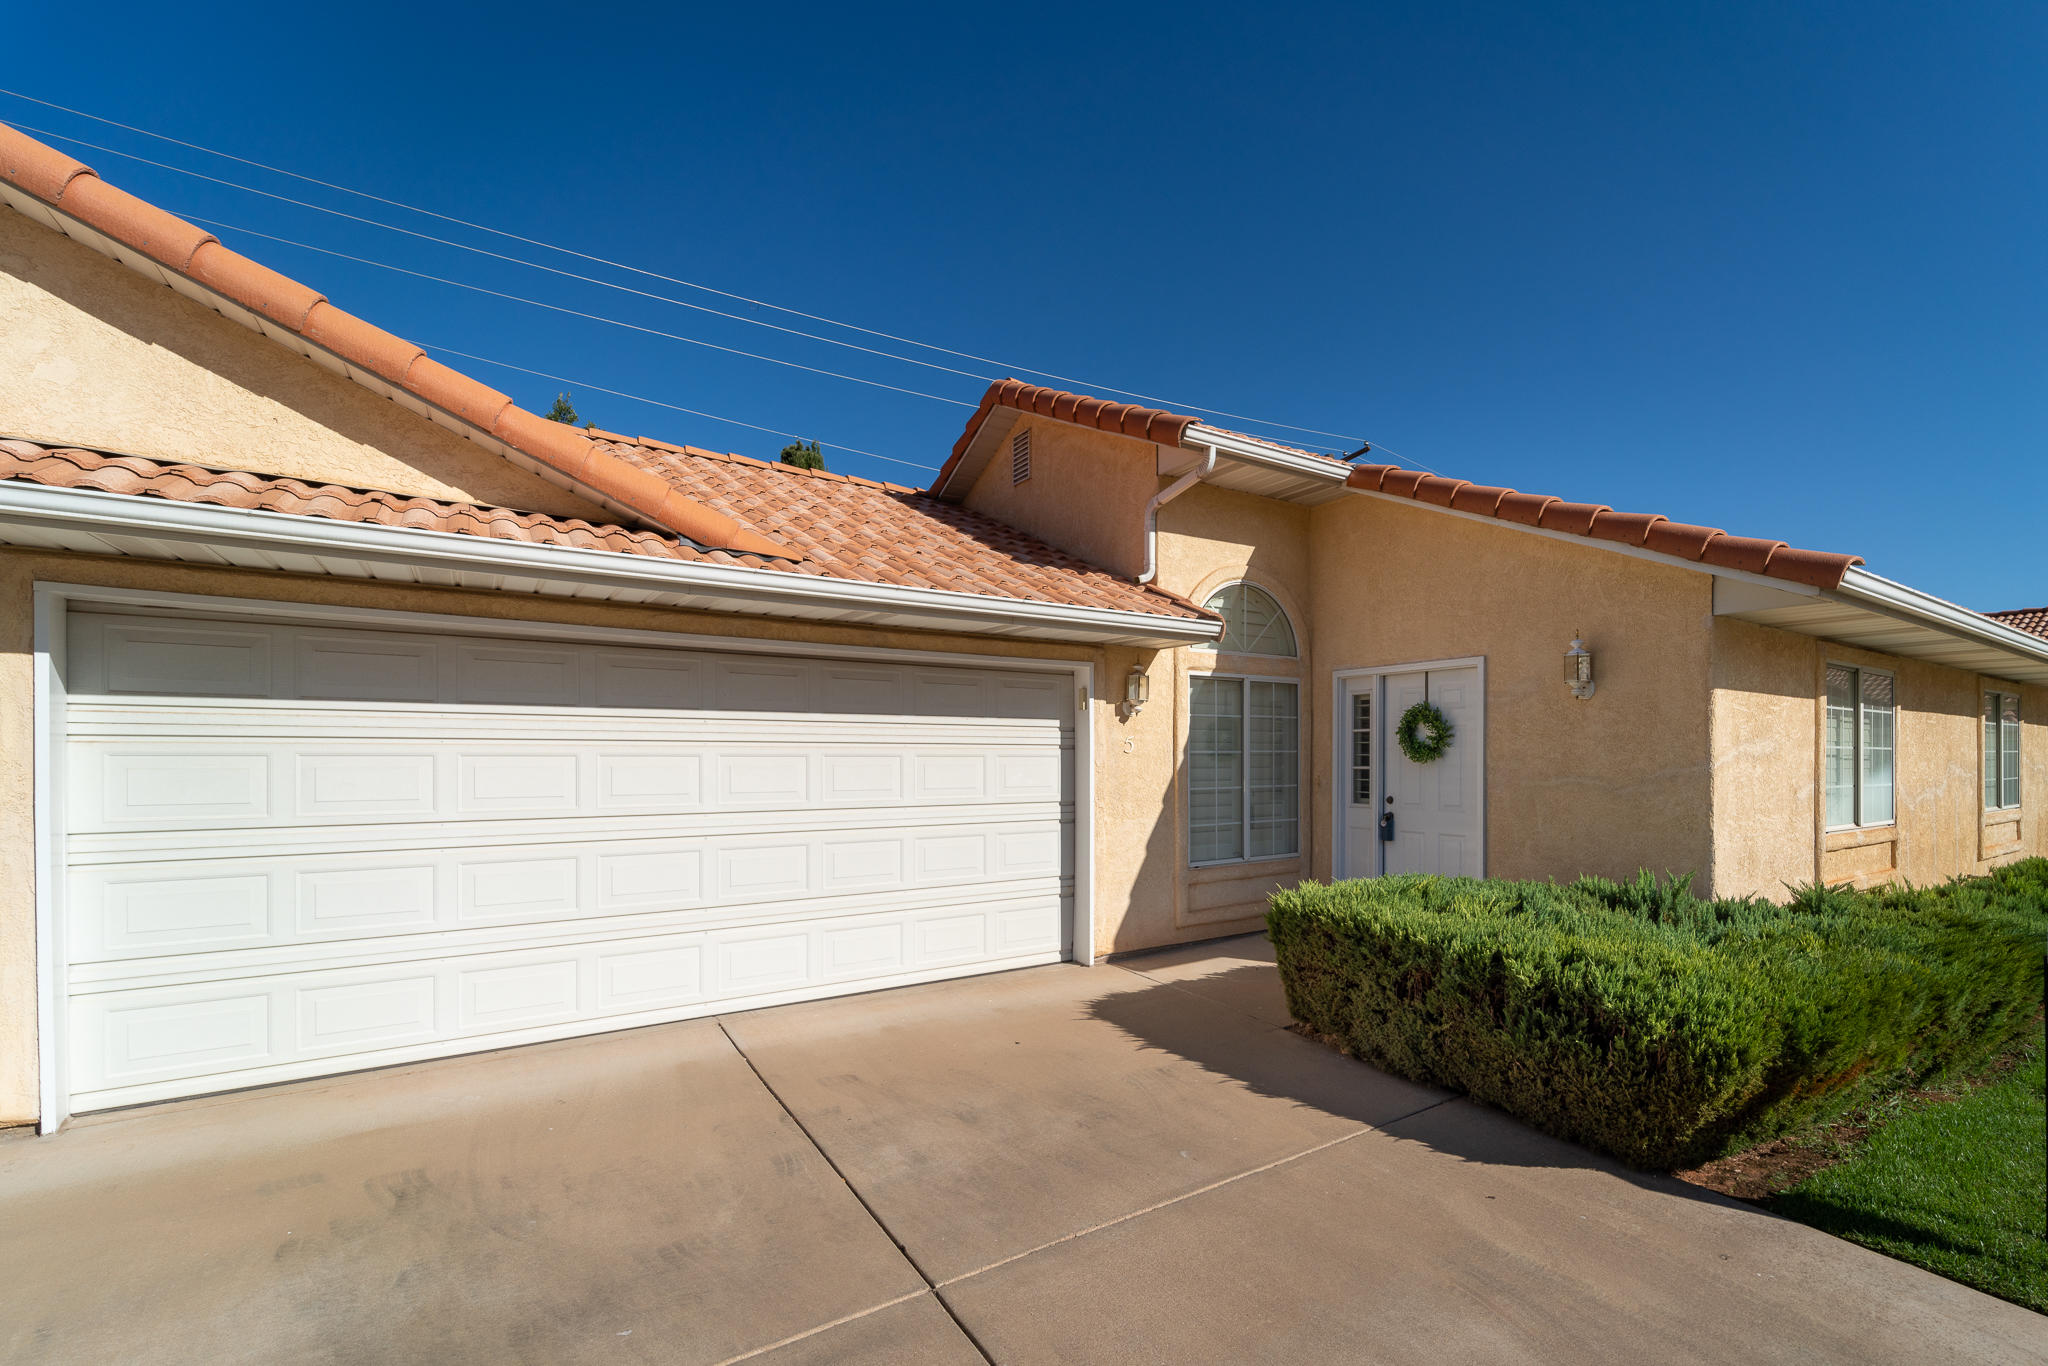 463 W 400 N Unit 5, St George Ut 84770